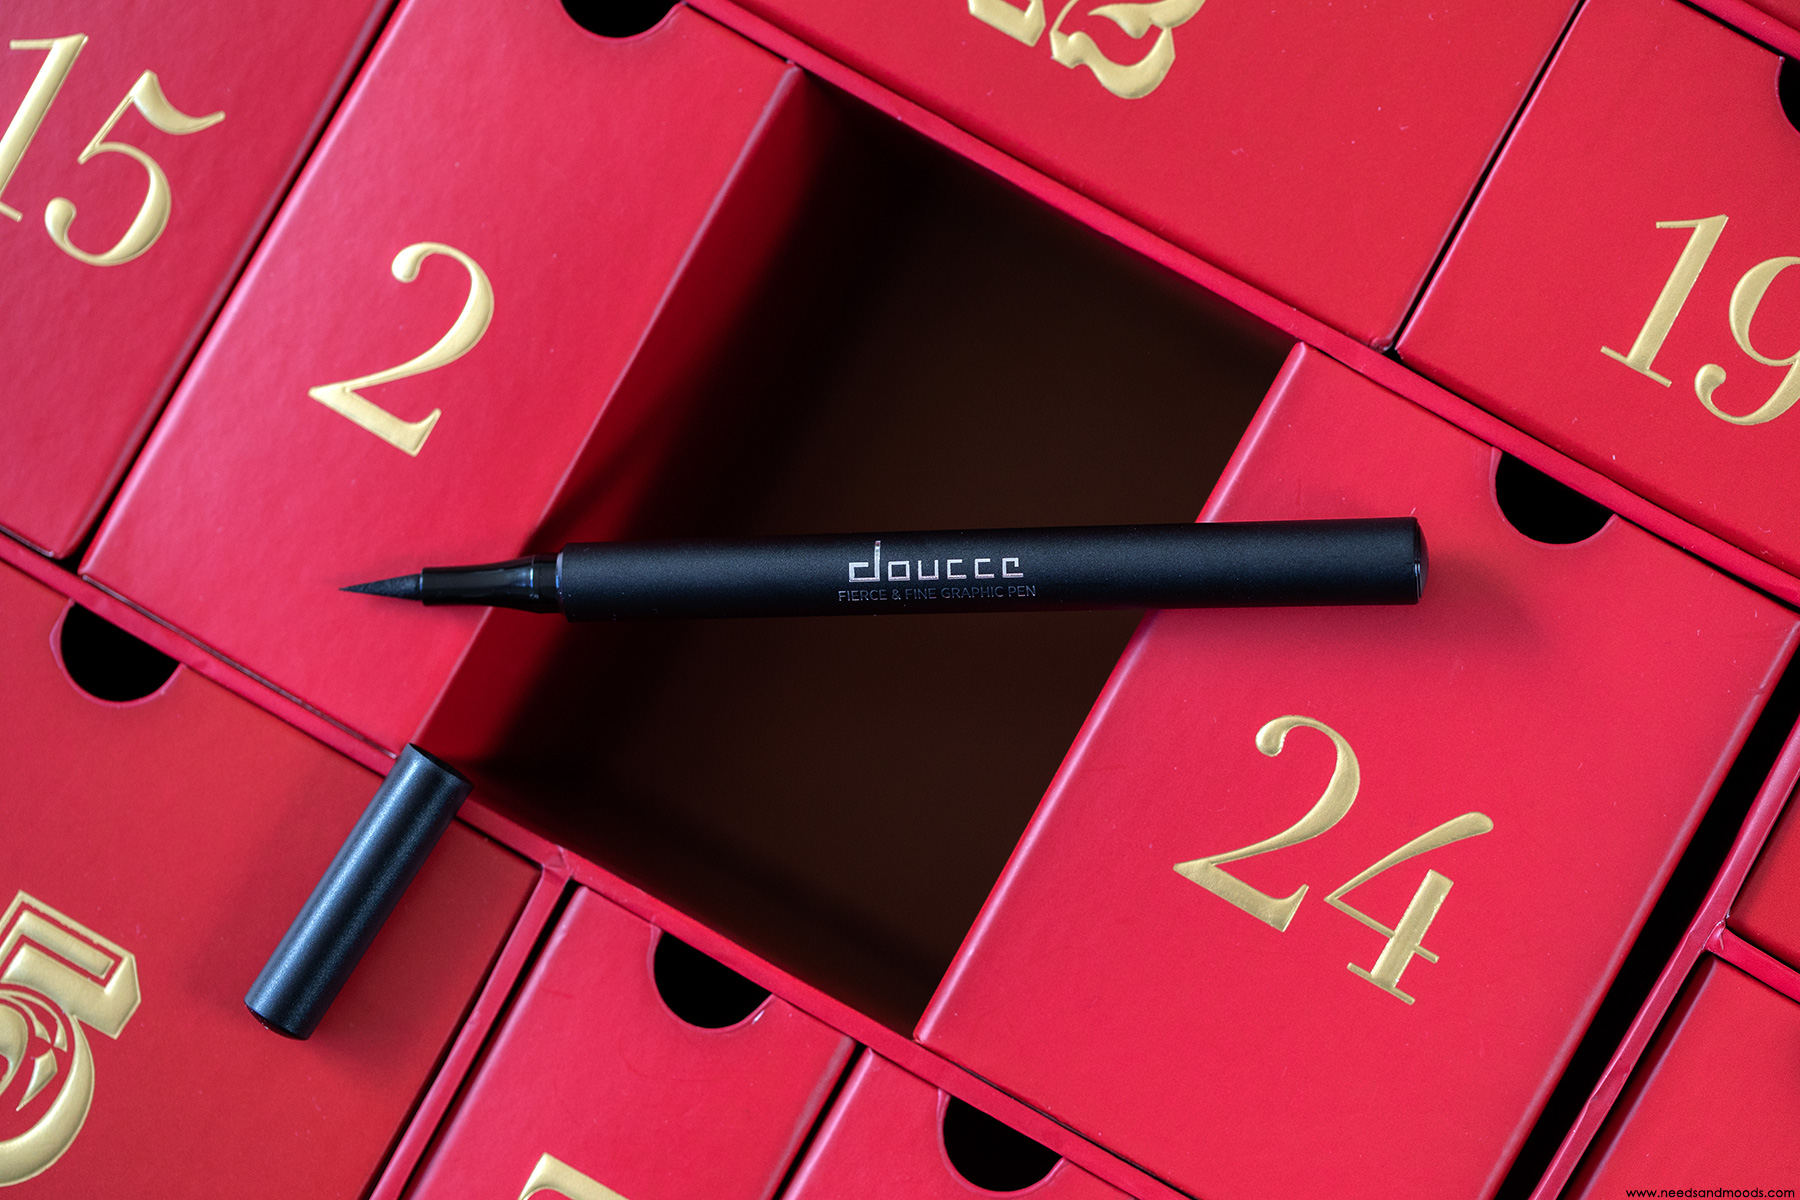 lookfantastic calendrier avent 2018 eyeliner doucce